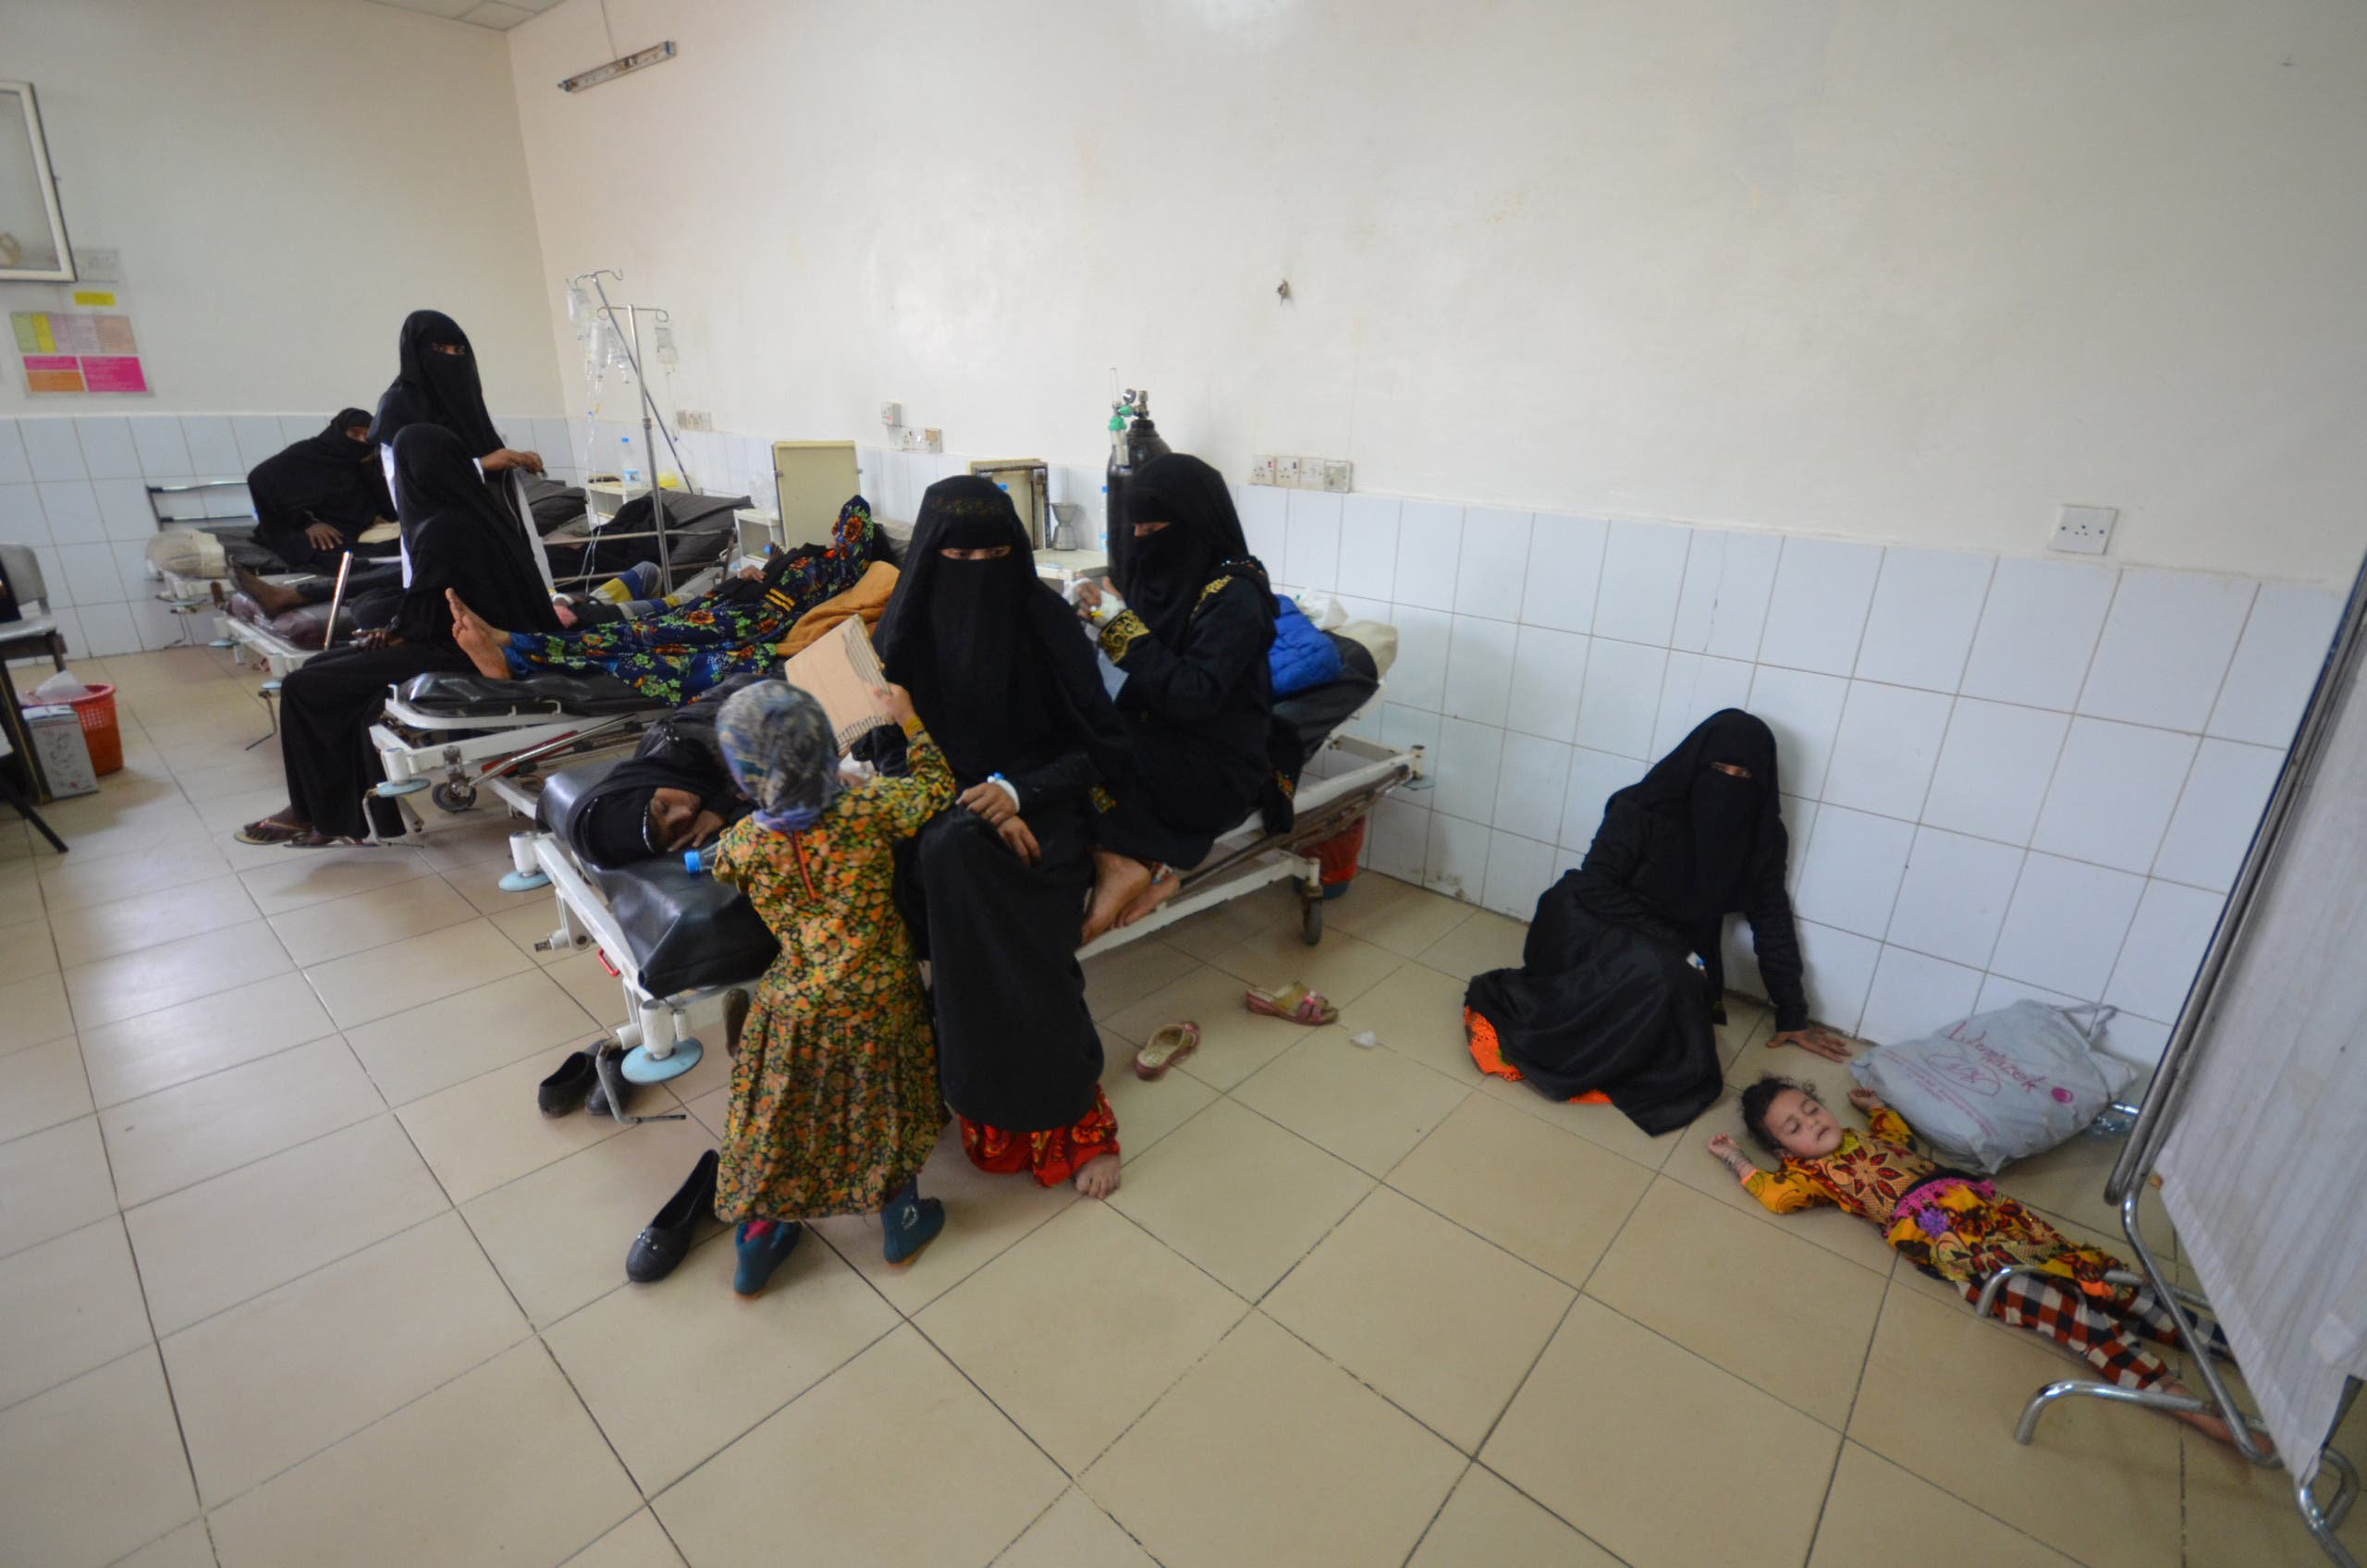 A girl infected with cholera lies on the ground of a hospital room in the Red Sea port city of Hodeidah, Yemen May 14, 2017. reuters